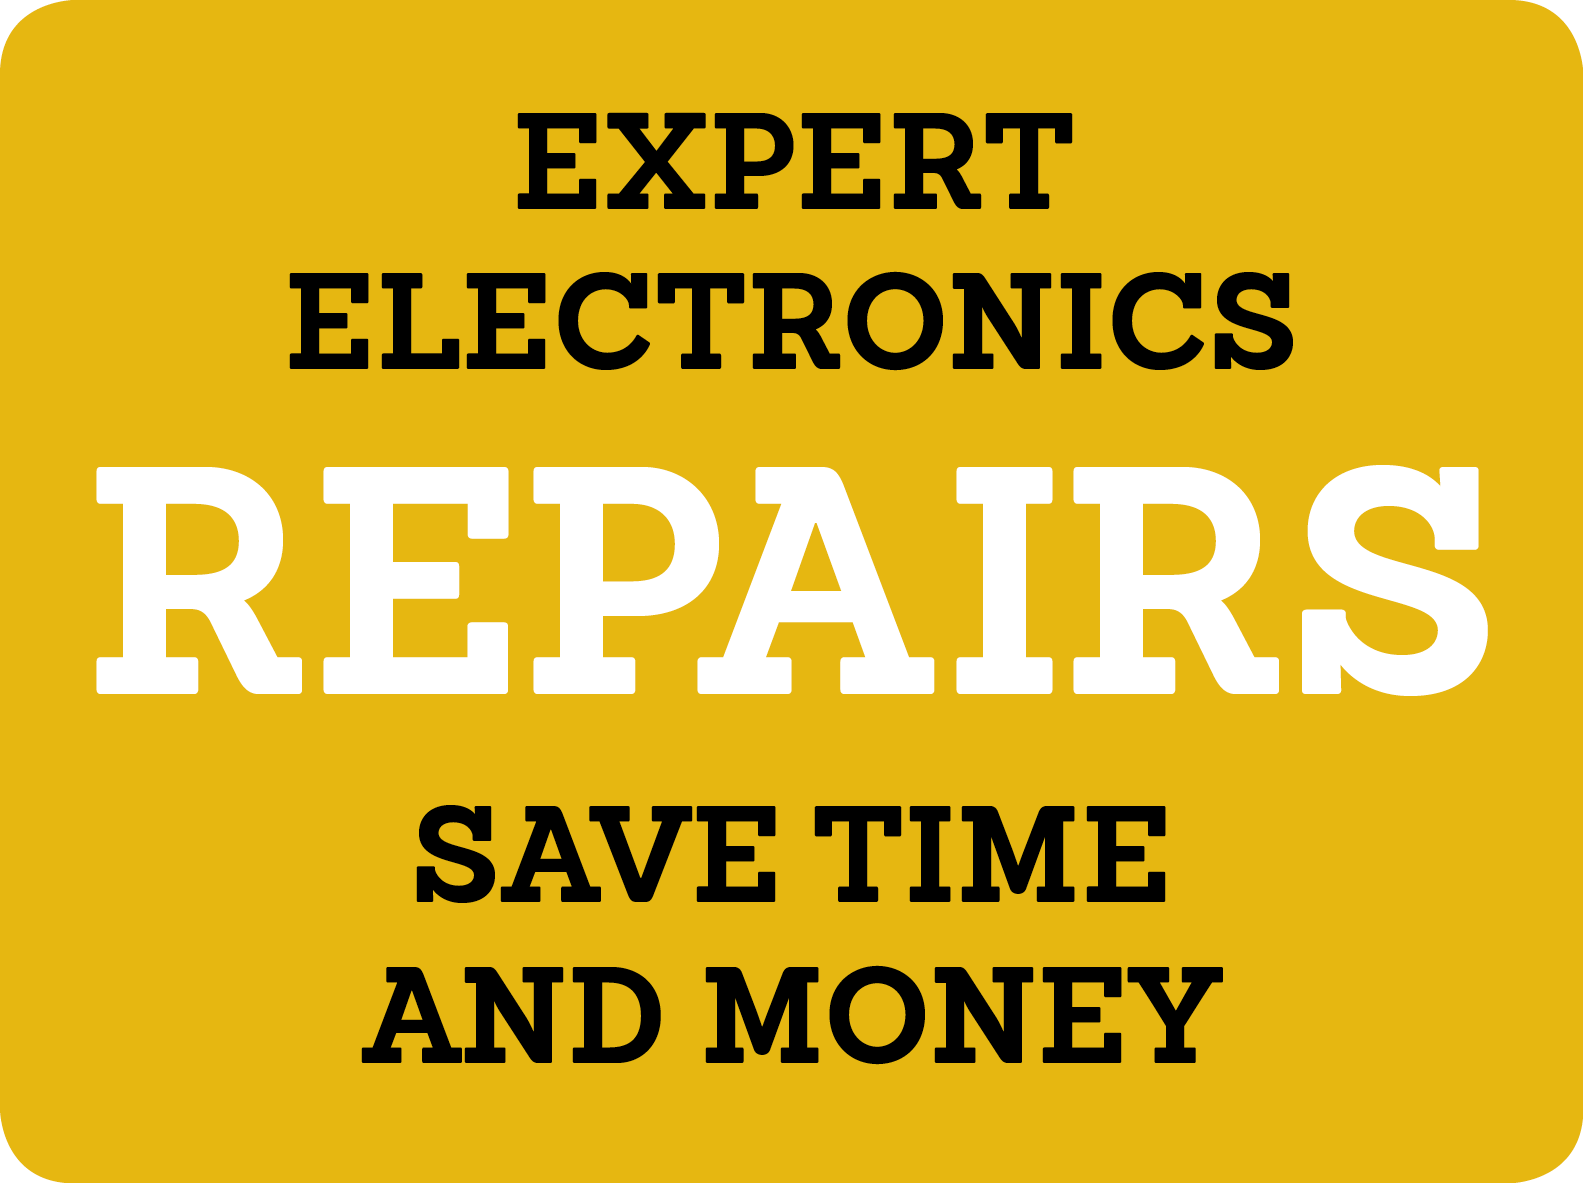 Repairs on Electronics, Monitors, TVs an...